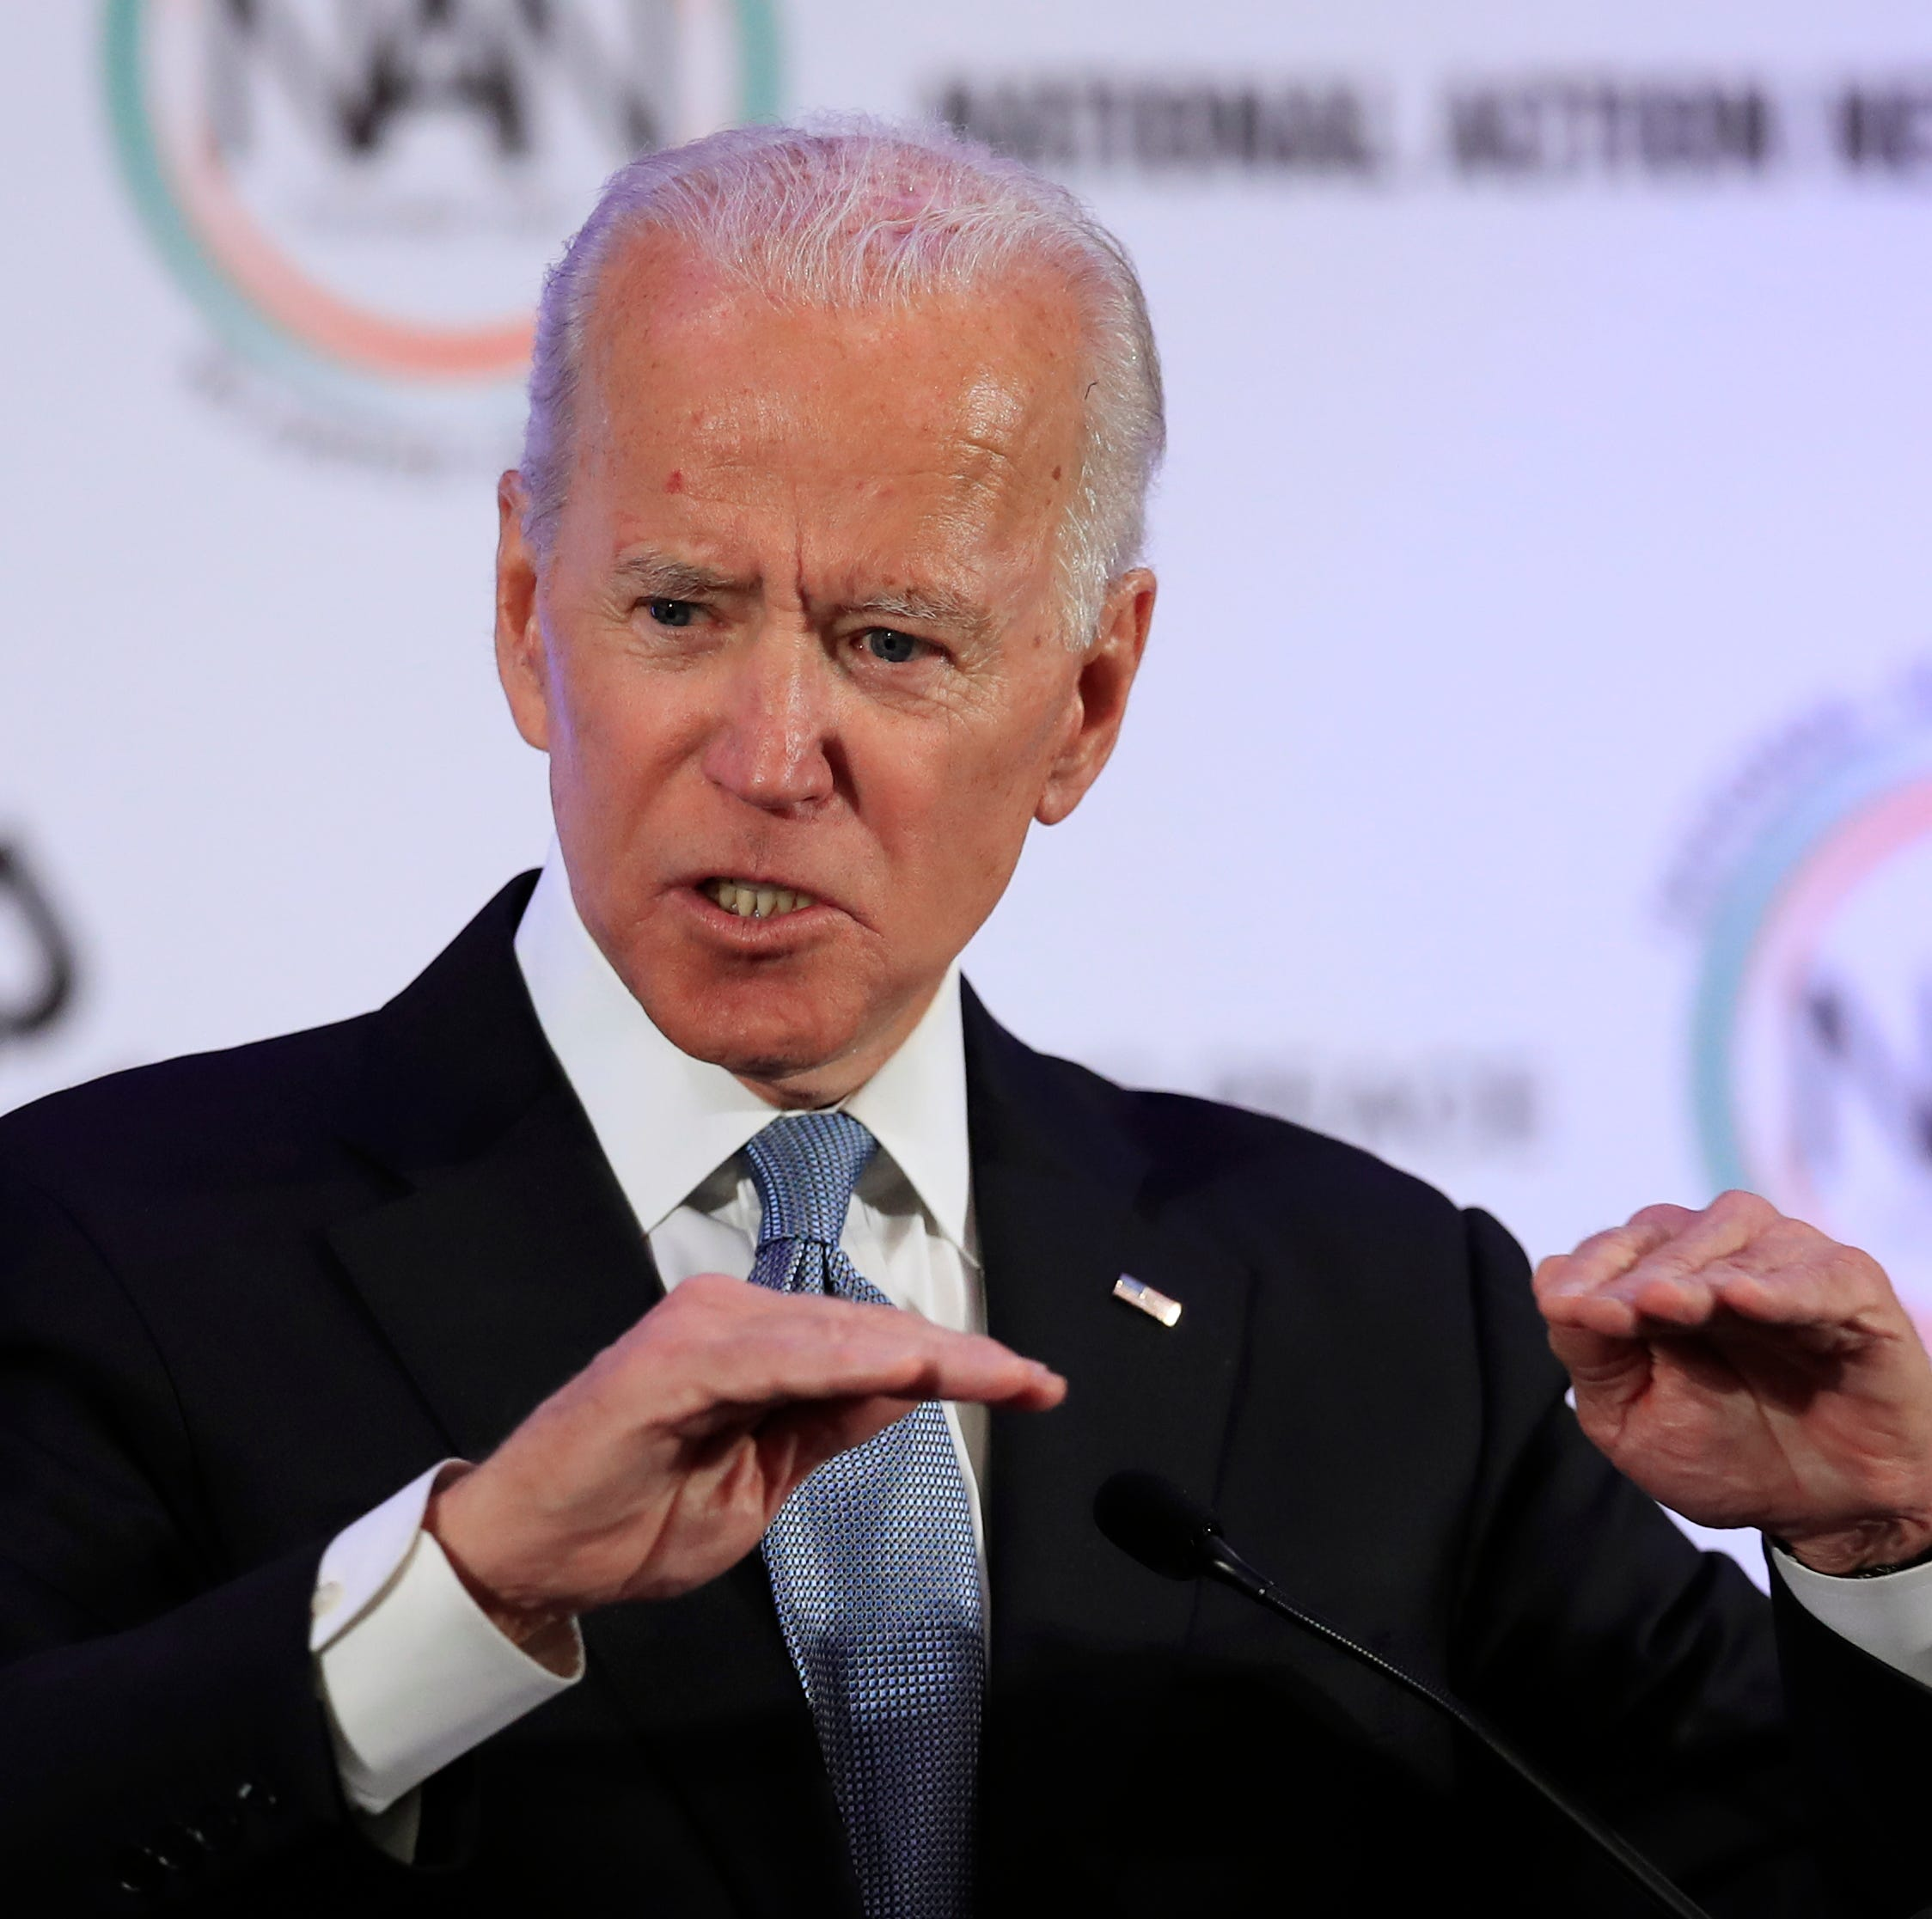 Biden says he regrets 1990s crime bill, calls it a 'big mistake' at MLK Day event